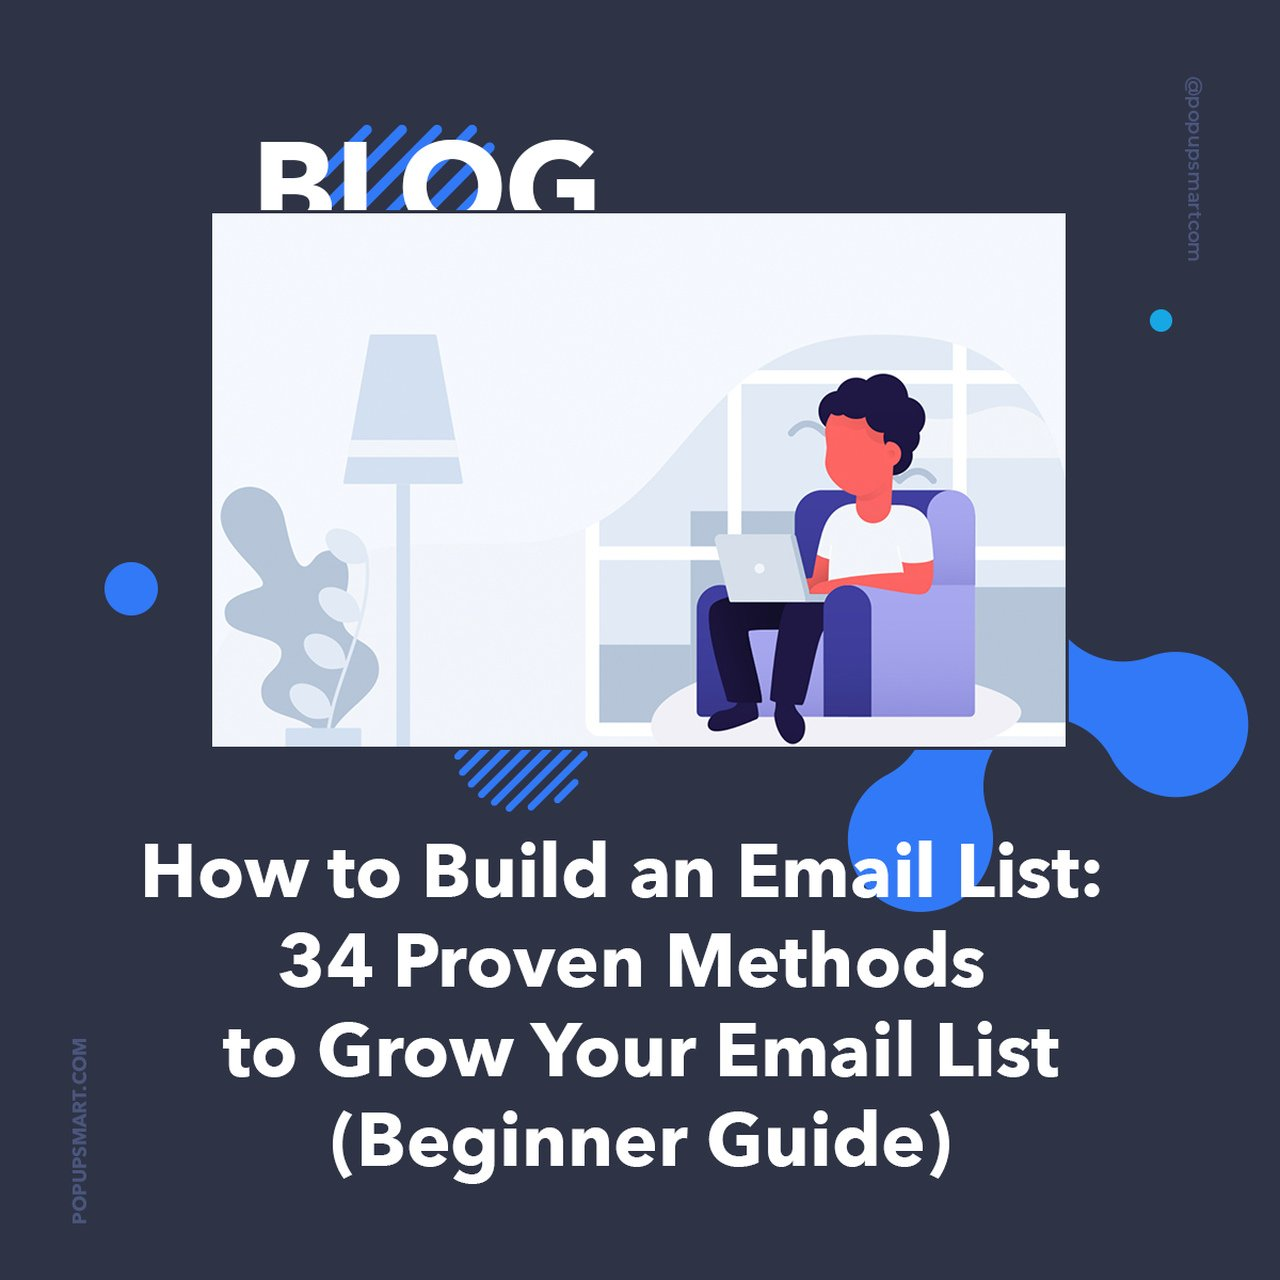 PopupSmart's design for building an email list blog.